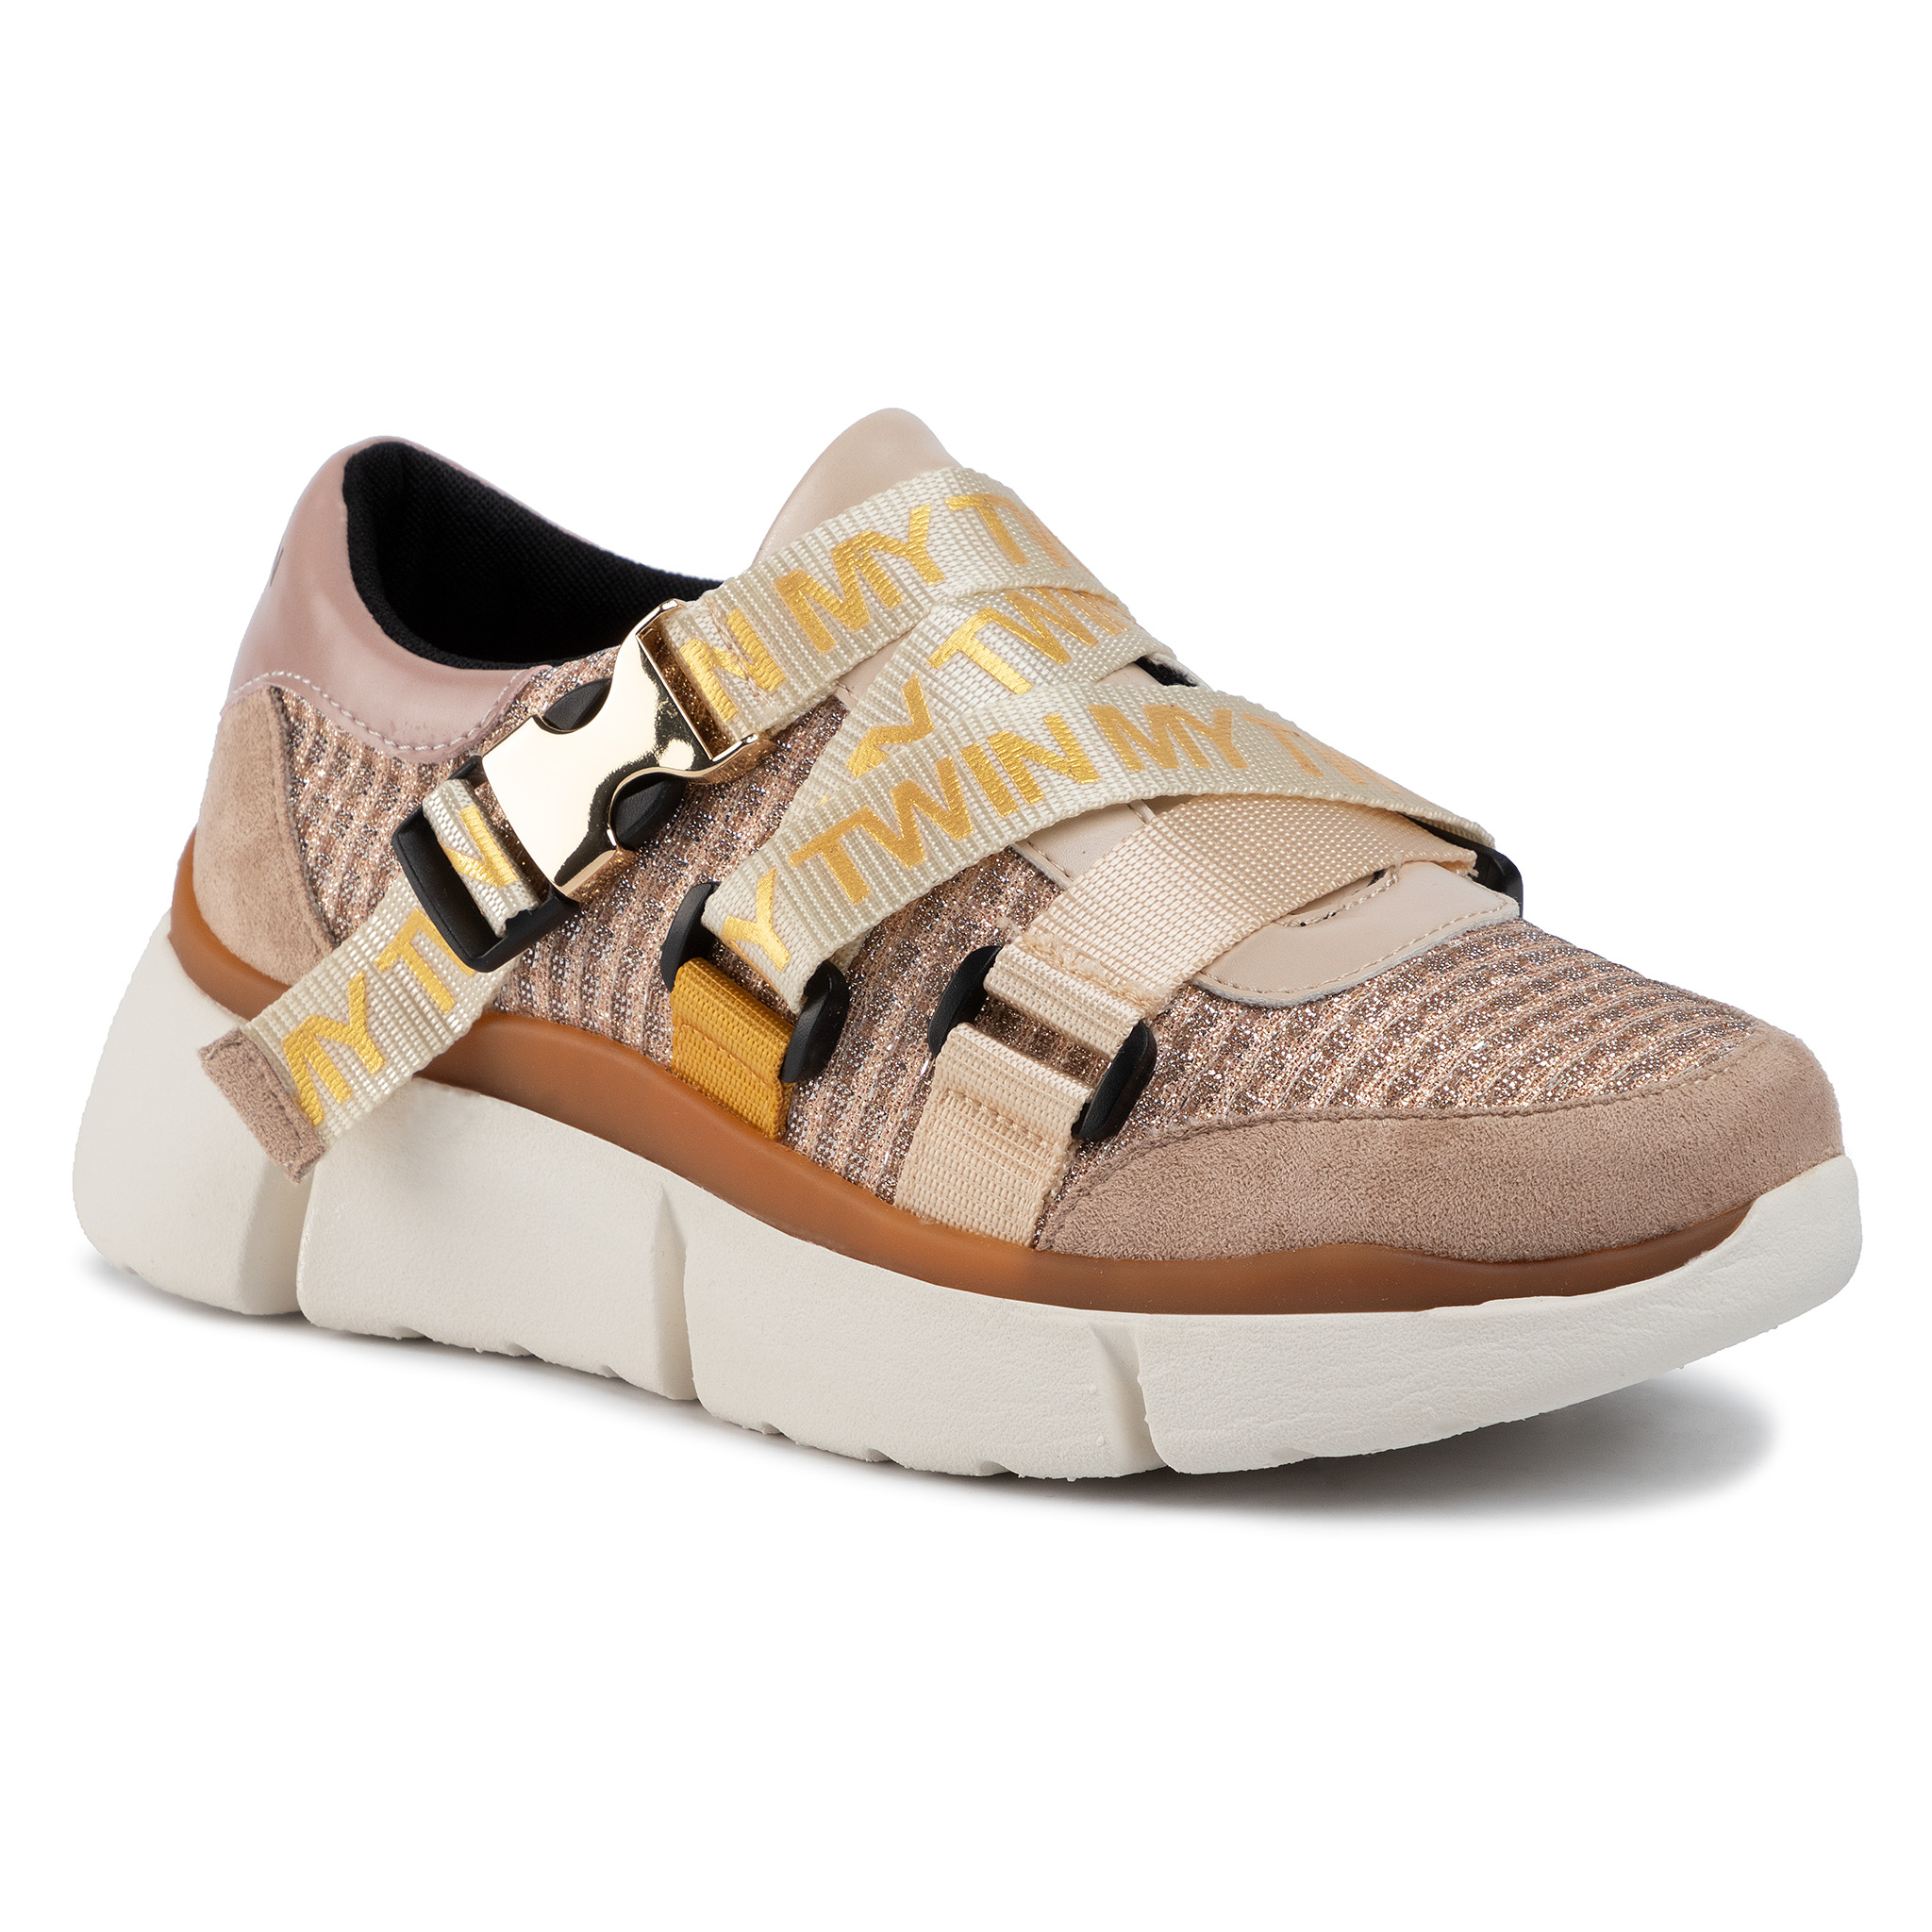 Sneakers MY TWIN - Running 192MCT130 Pale Pink 03025